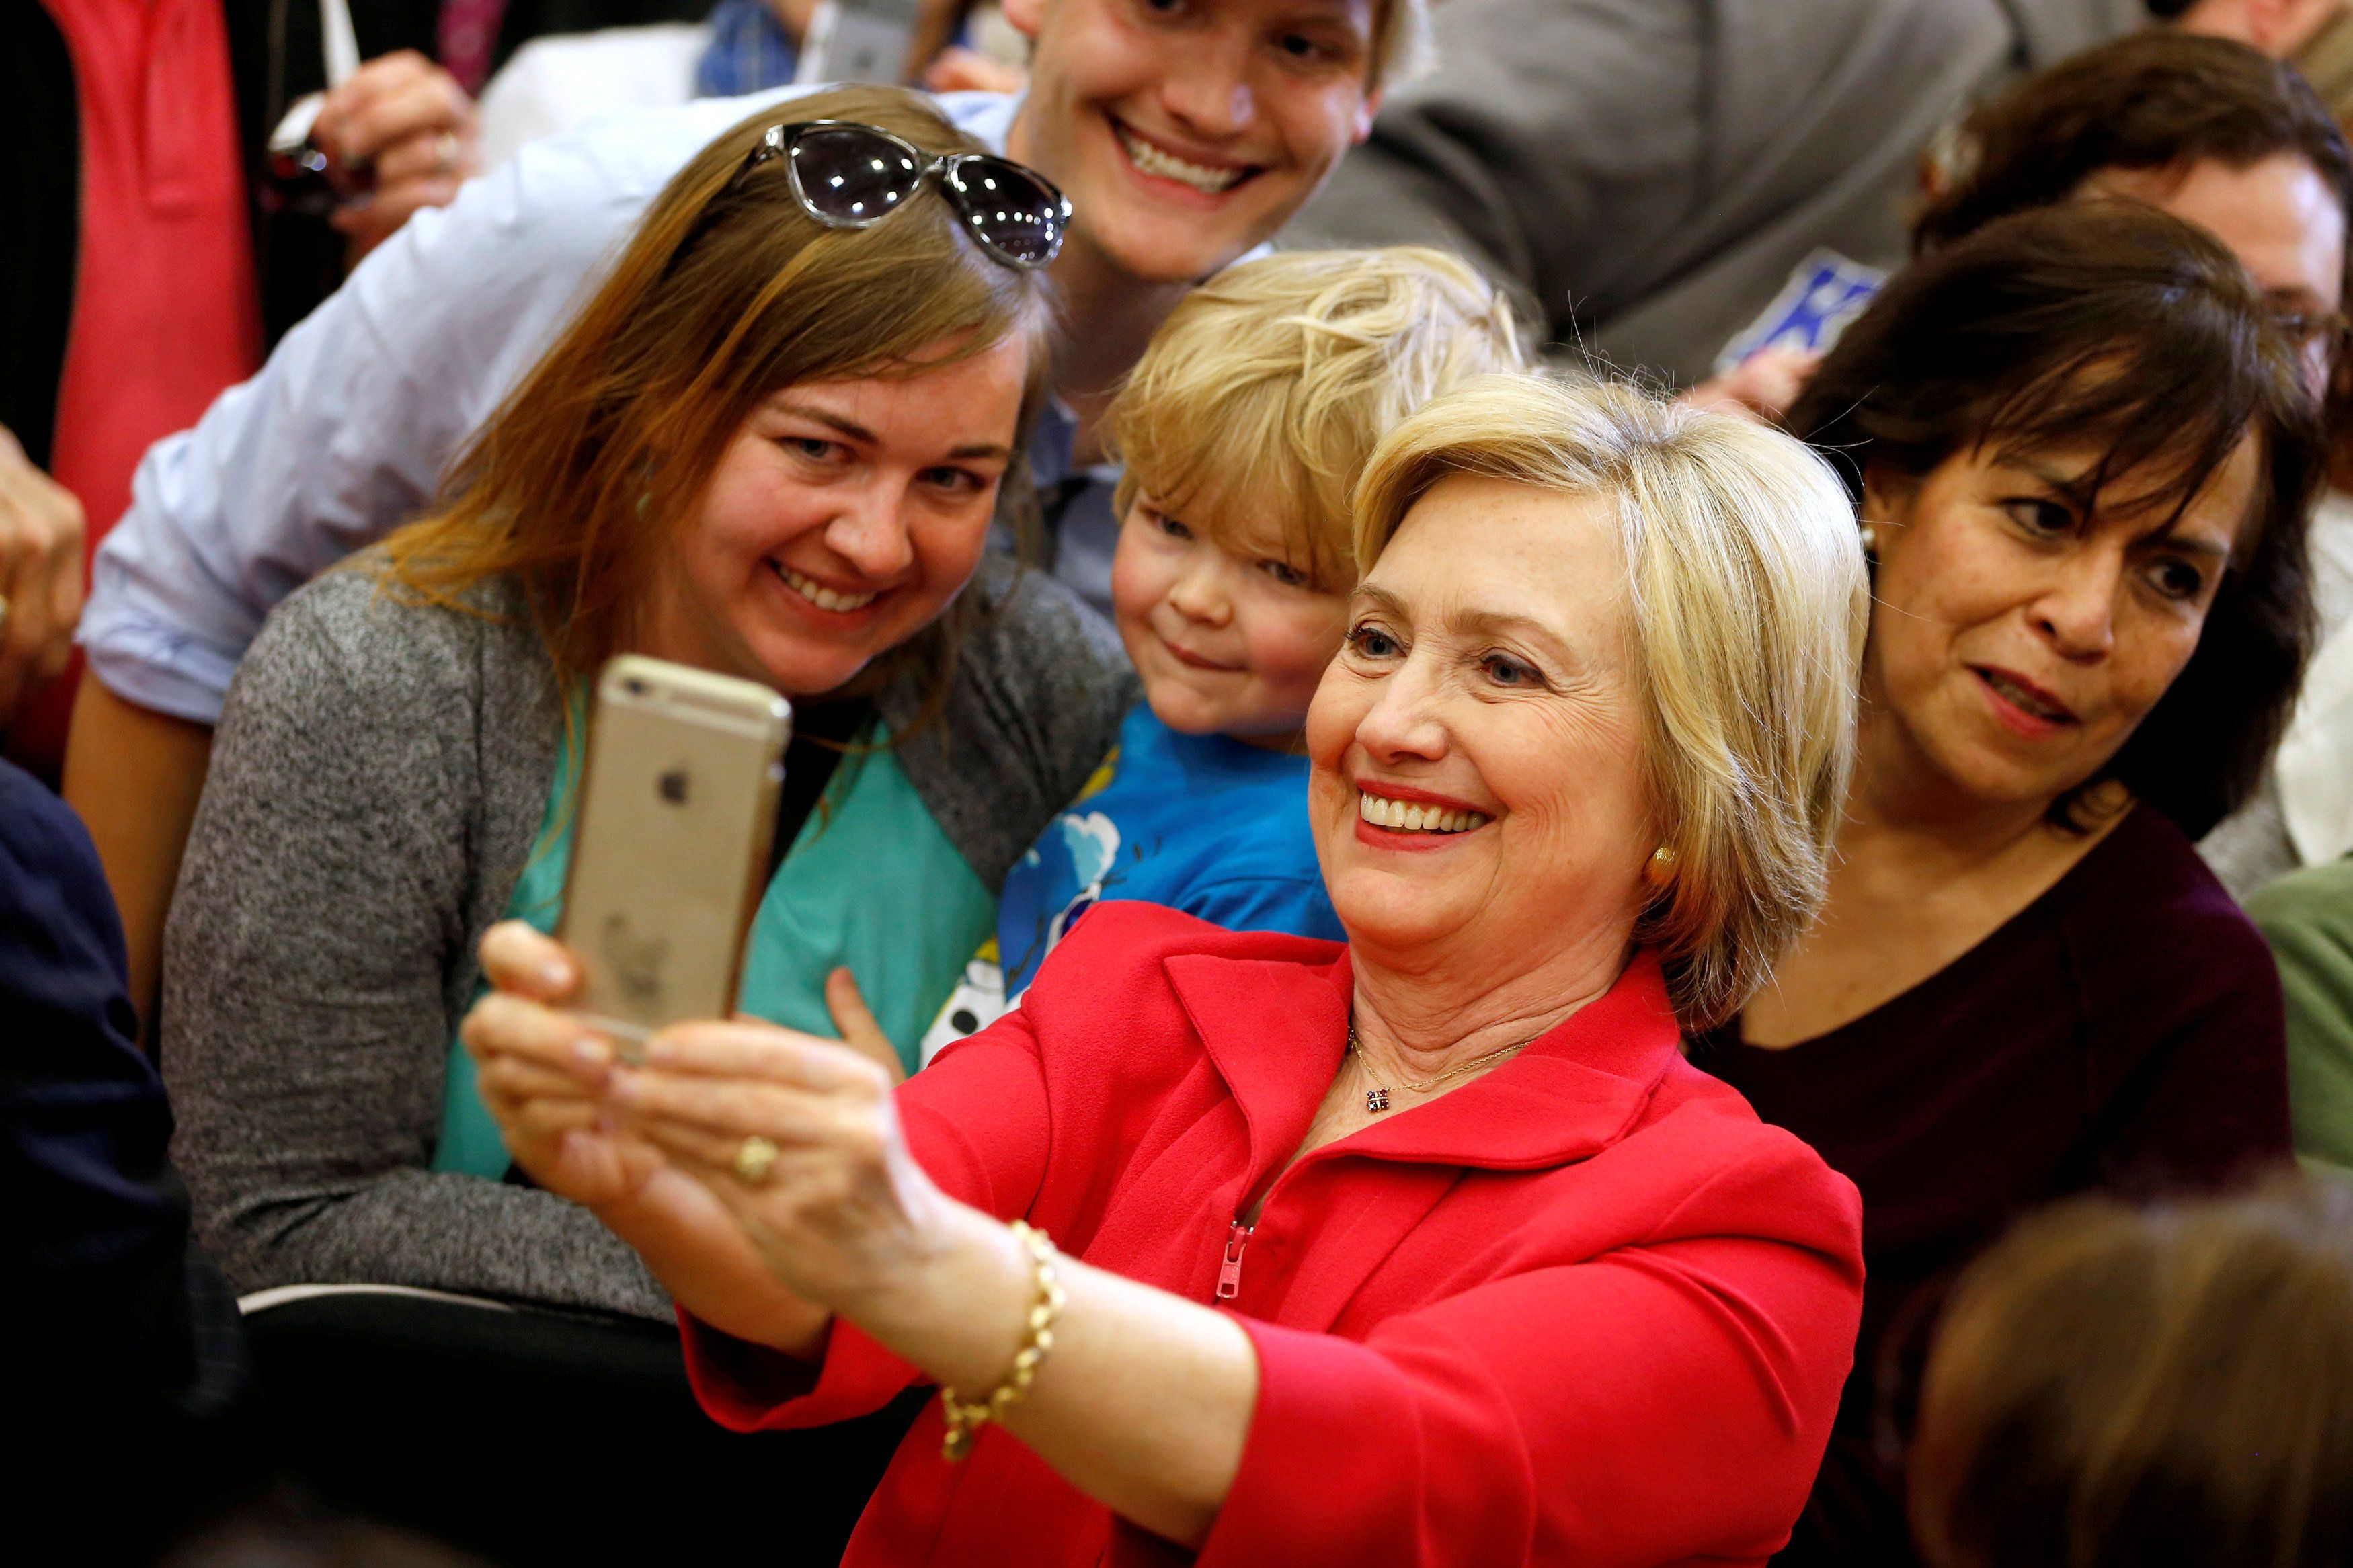 U.S. Democratic presidential candidate Hillary Clinton greets supporters at Transylvania University in Lexington, Kentucky, U.S., May 16, 2016.  REUTERS/Aaron P. Bernstein